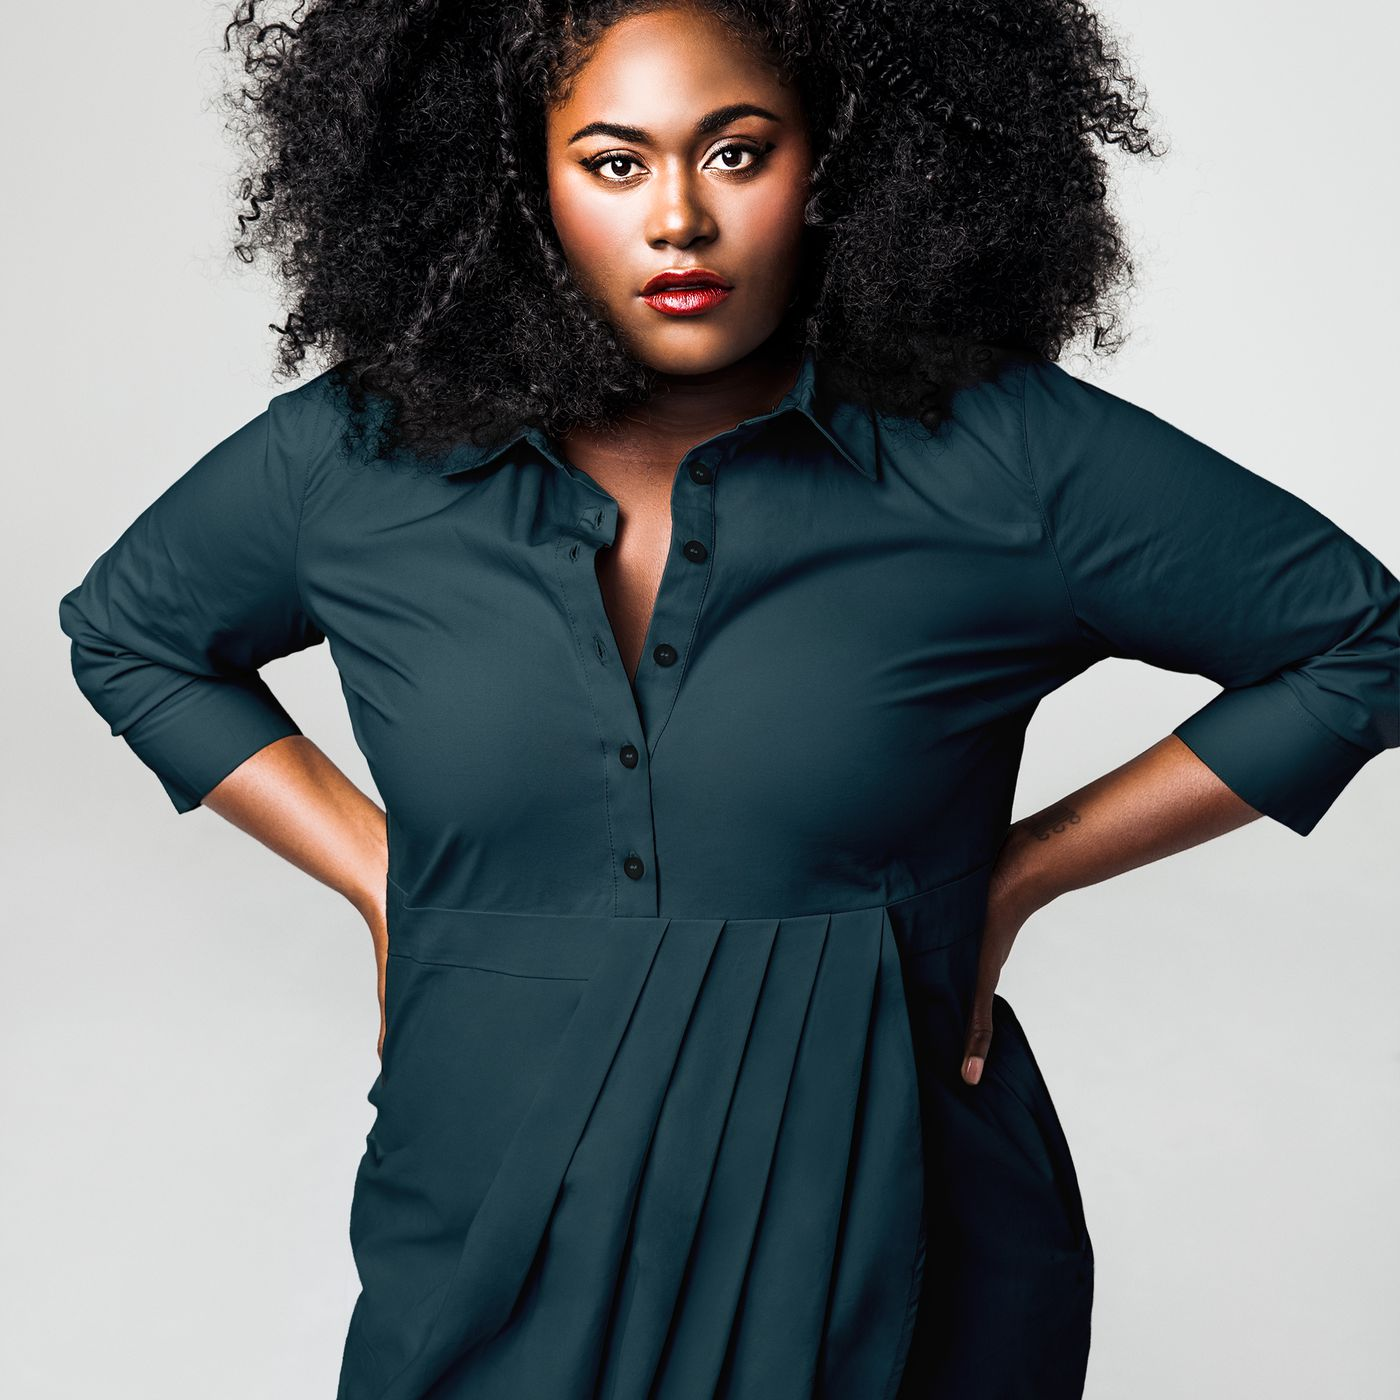 8e7537e3ac Danielle Brooks and Universal Standard Launch a Three-Piece Collection -  Racked